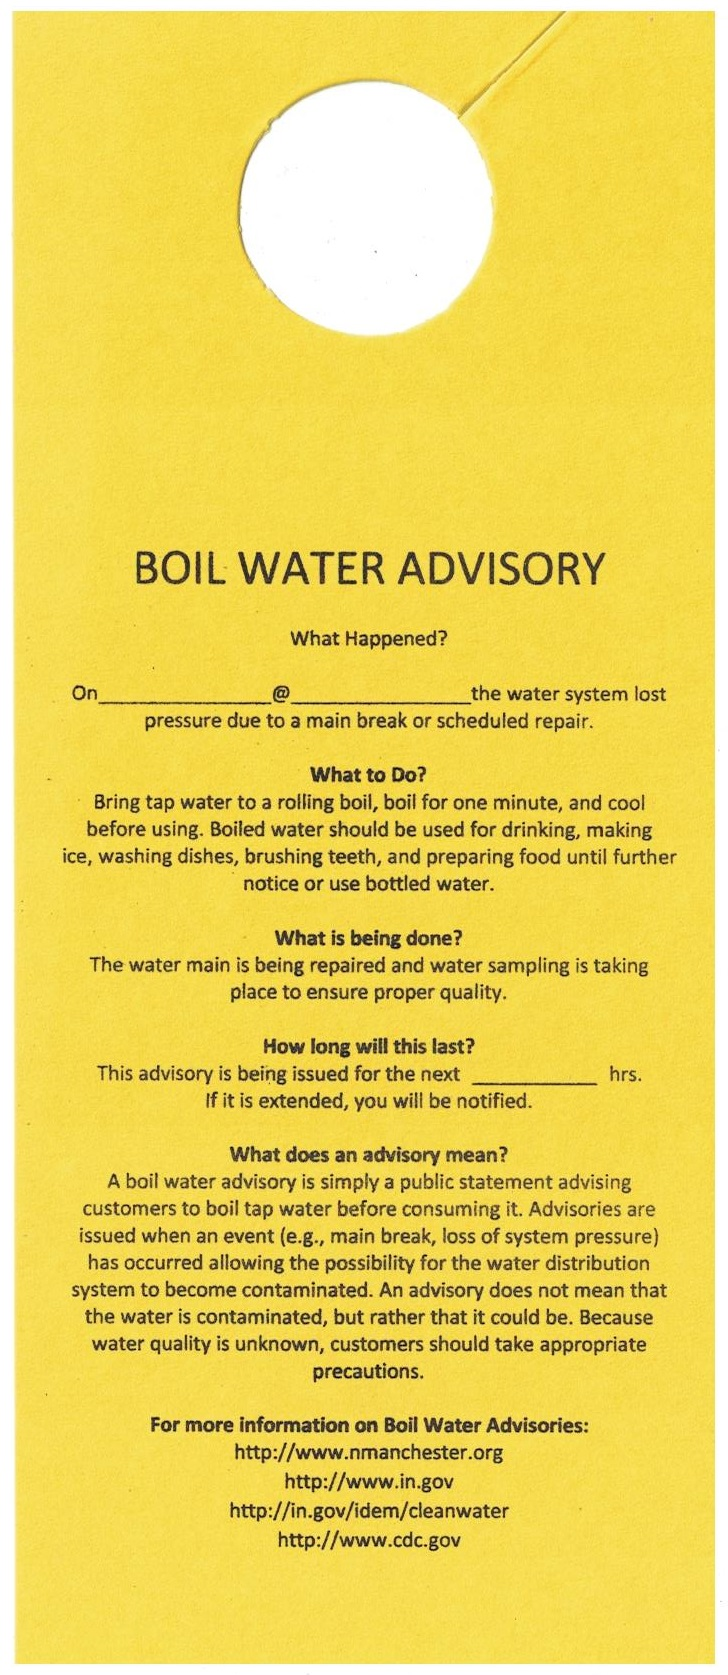 BOIL WATER ADVISORY / North Manchester, IN